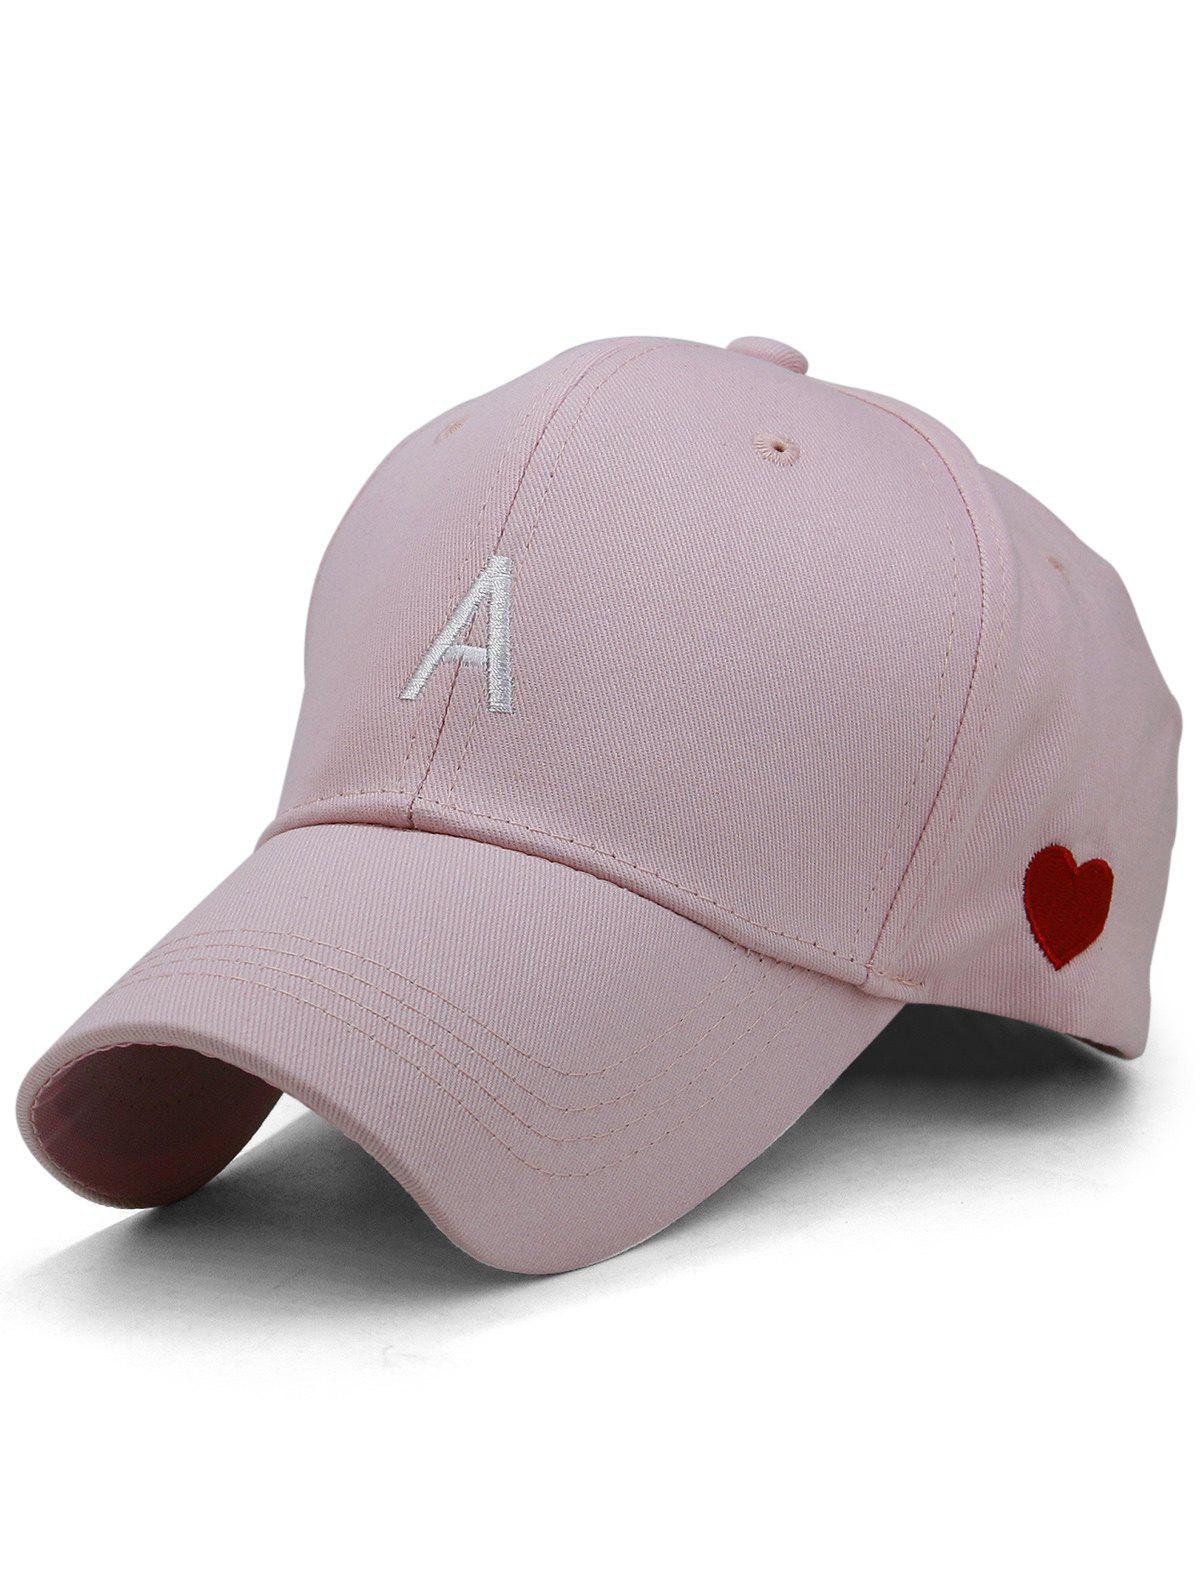 Unique Sweetheart Embroidery Adjustable Baseball Hat